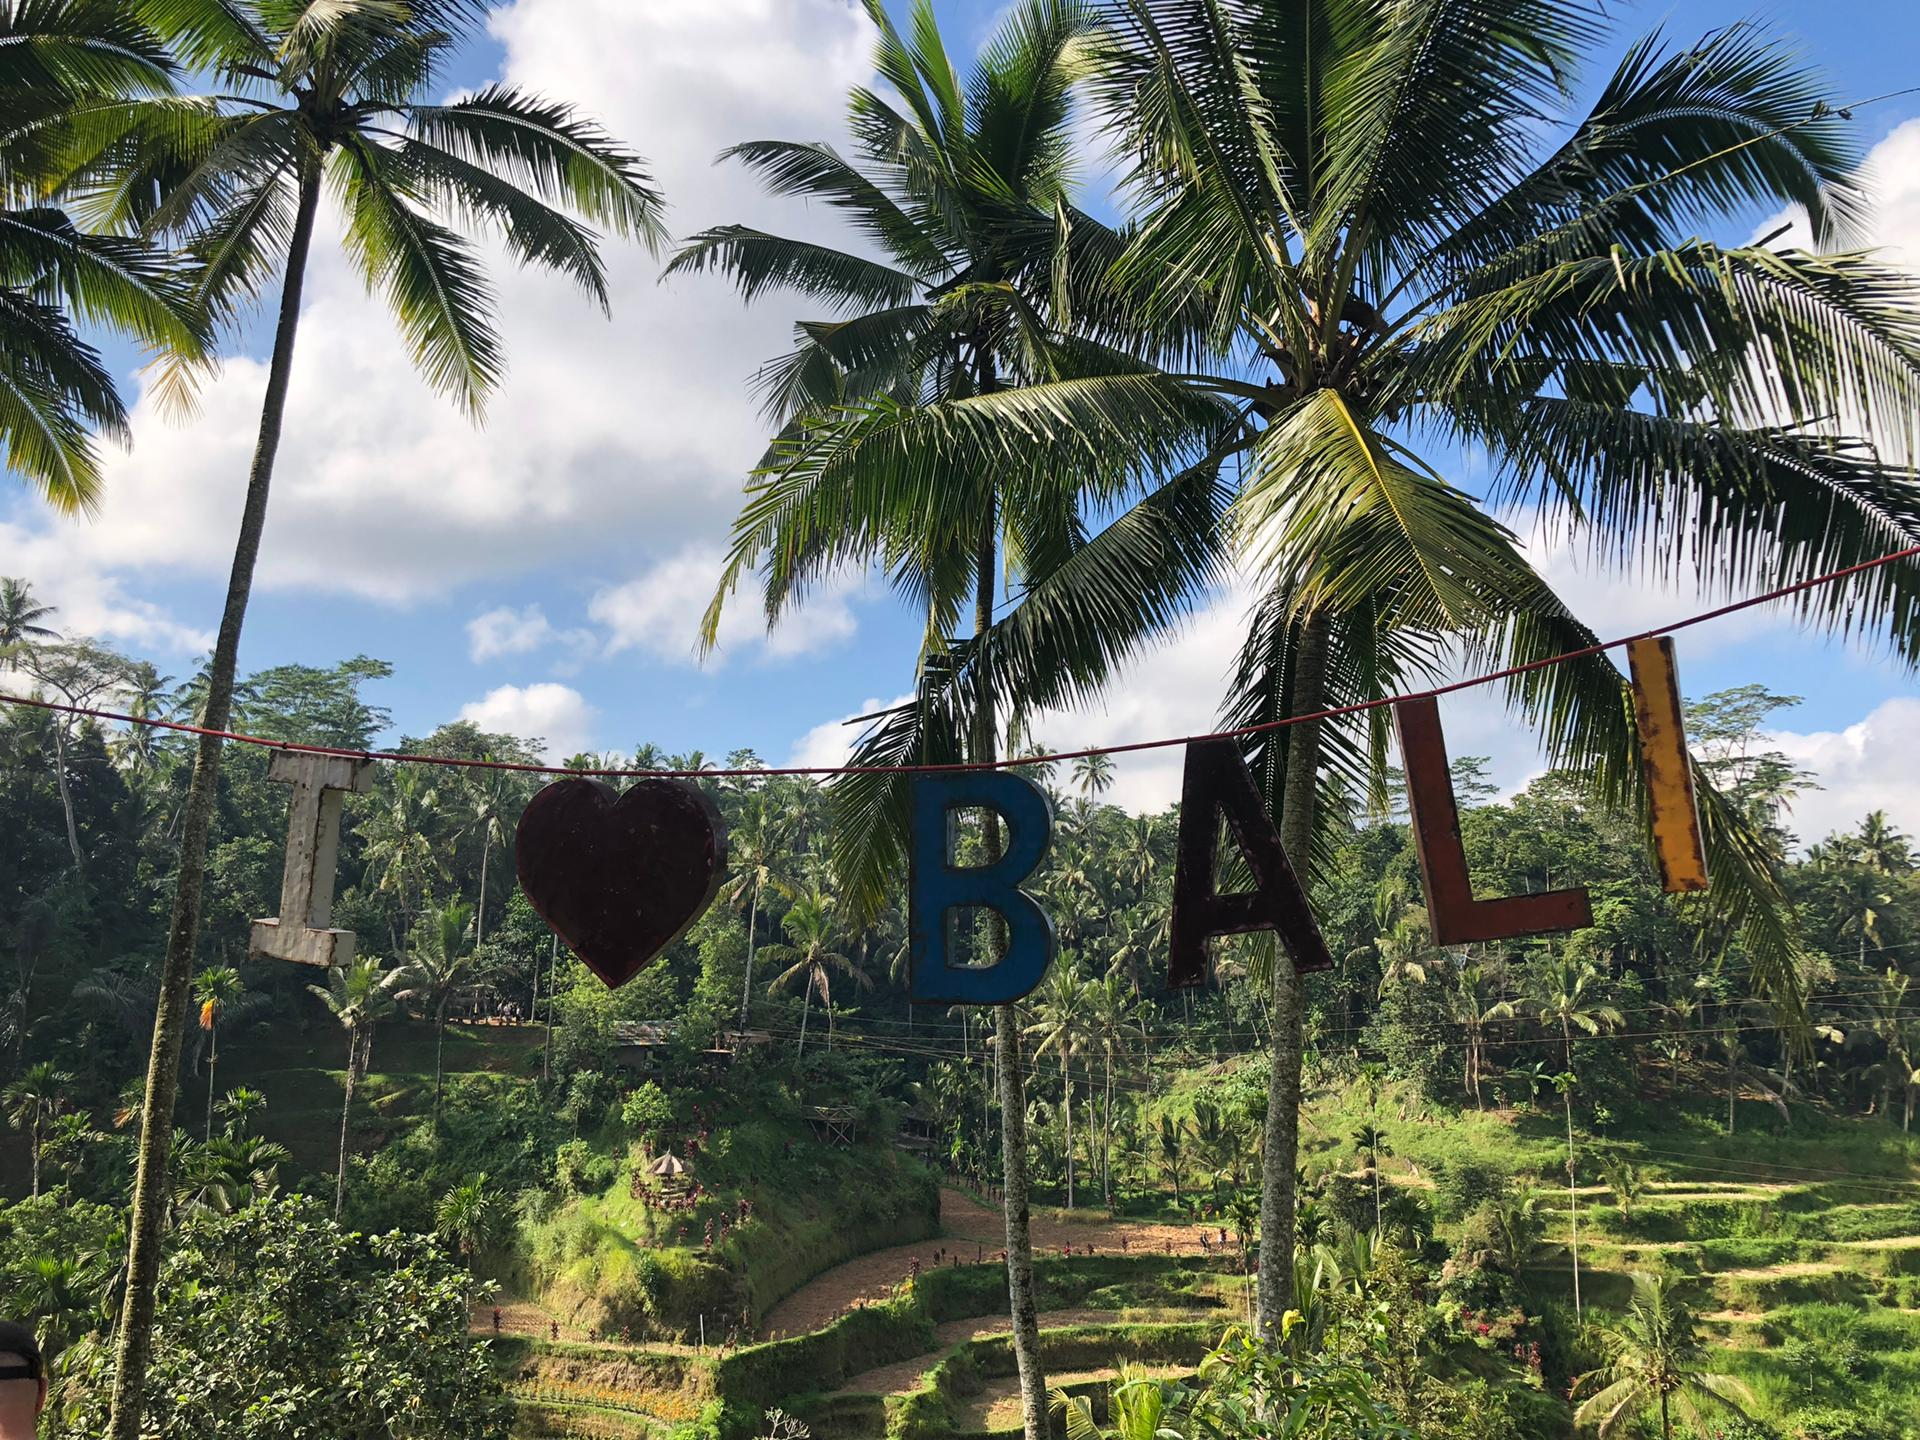 My Trip To Bali: Ubud Part 1